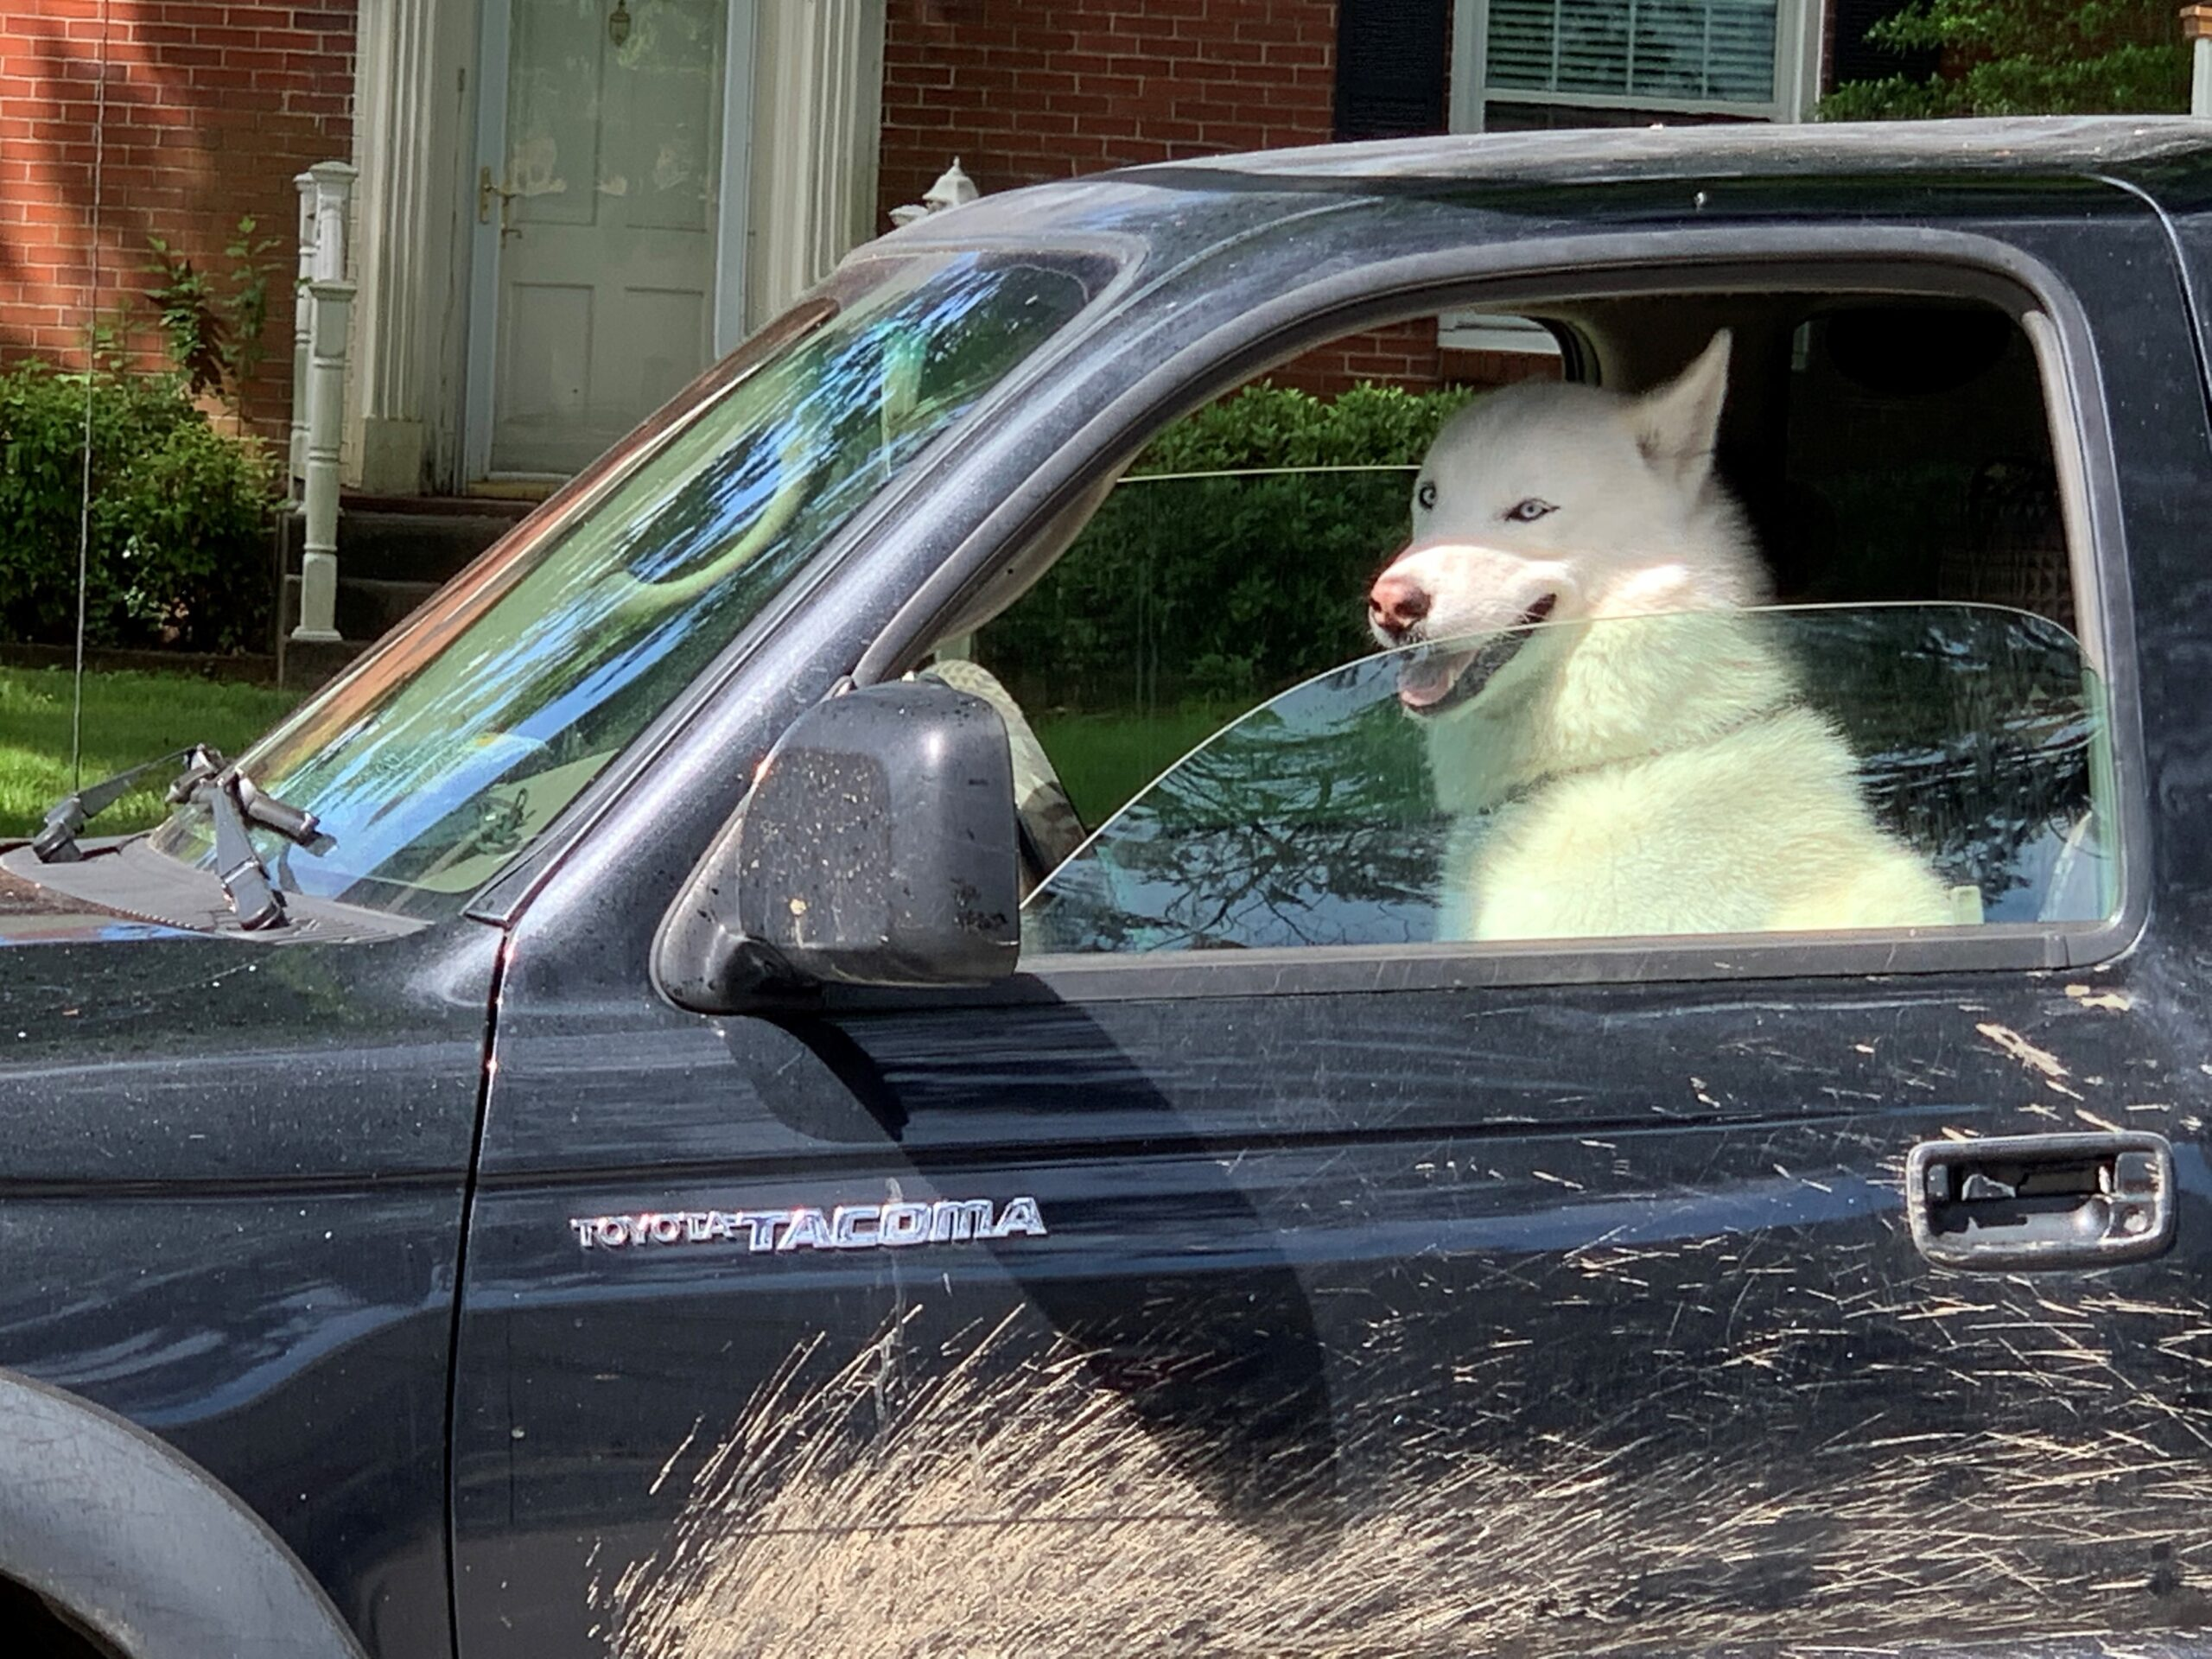 what we learn from a dog in the driver's seat